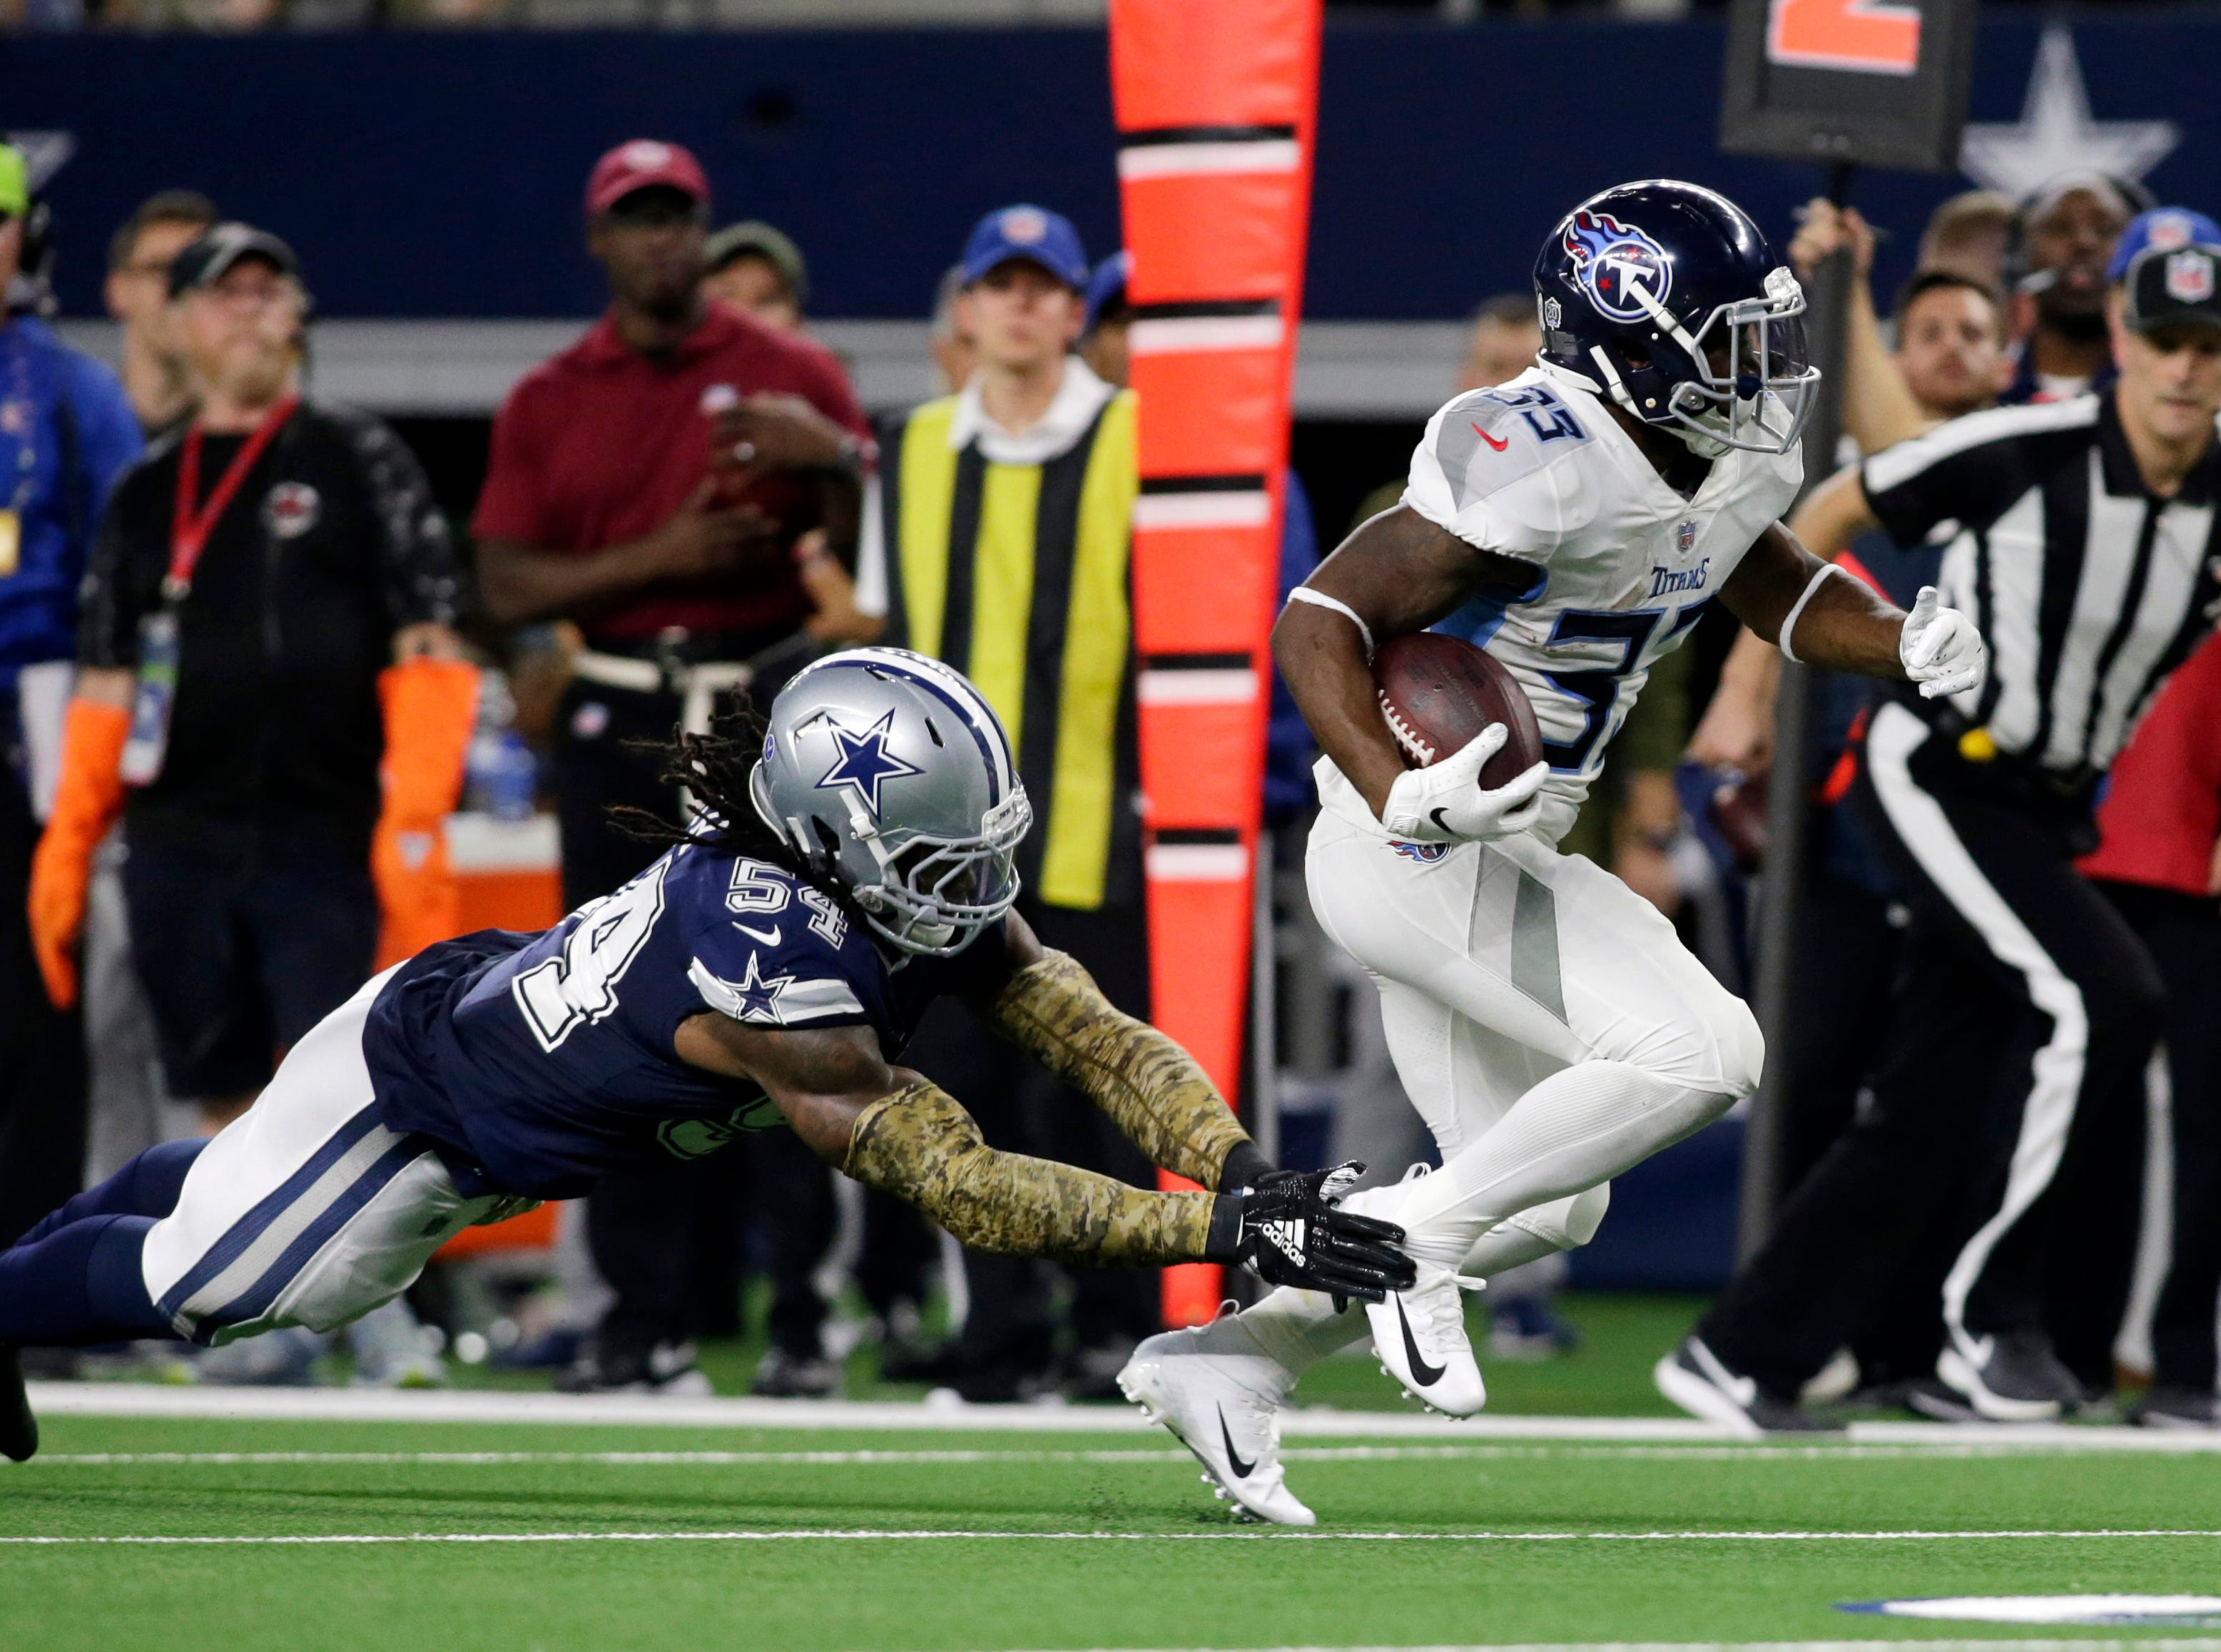 Nov 5, 2018; Arlington, TX, USA; Tennessee Titans running back Dion Lewis (33) runs against Dallas Cowboys middle linebacker Jaylon Smith (54) in the second quarter  at AT&T Stadium.